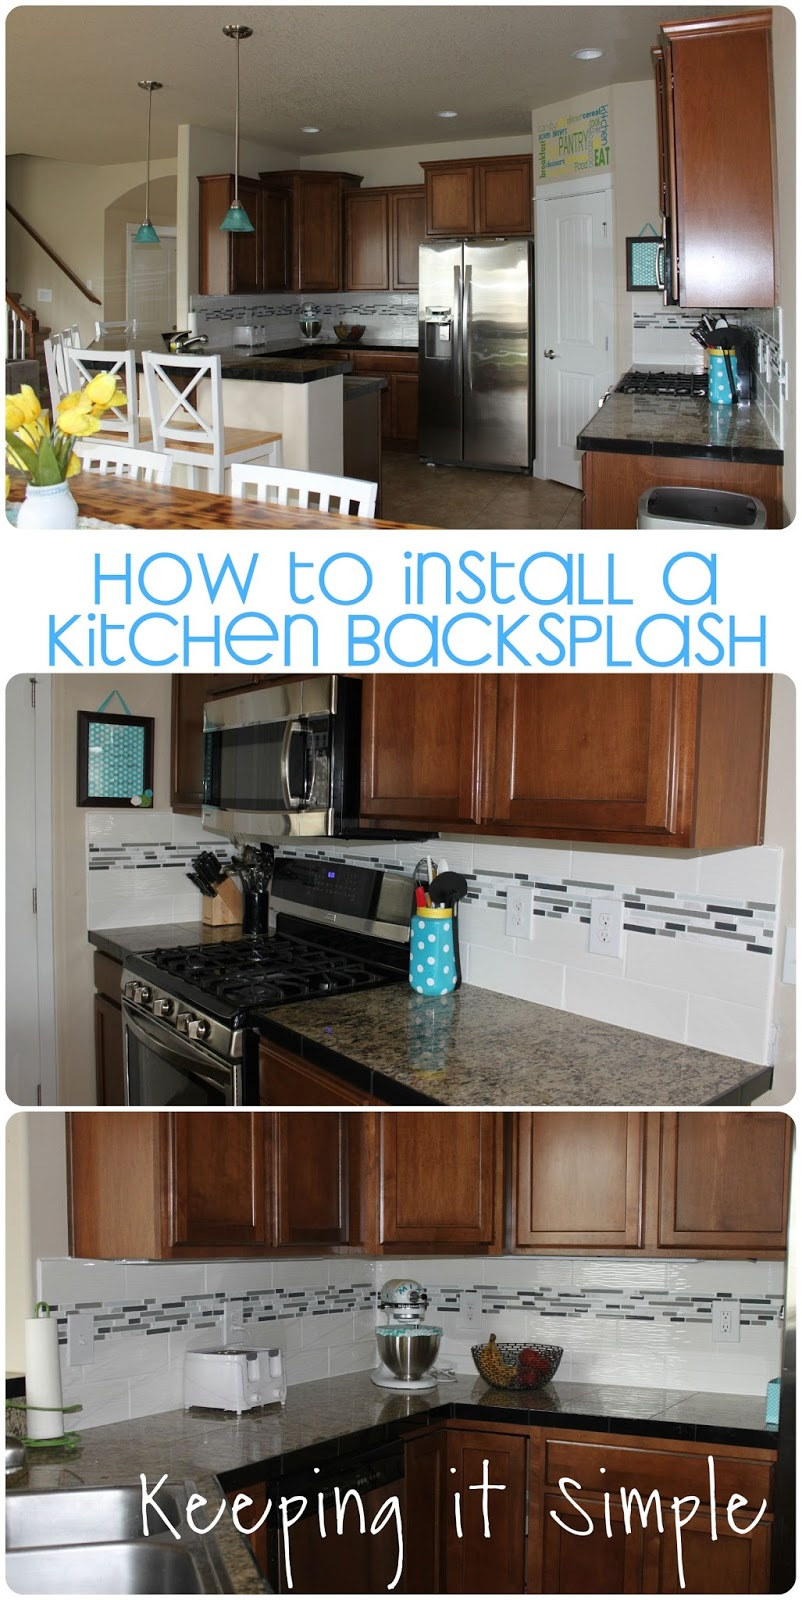 How to install a kitchen back splash with wavecrest and mosaic how to install a kitchen back splash with wavecrest and mosaic tile using sticky mat dailygadgetfo Choice Image